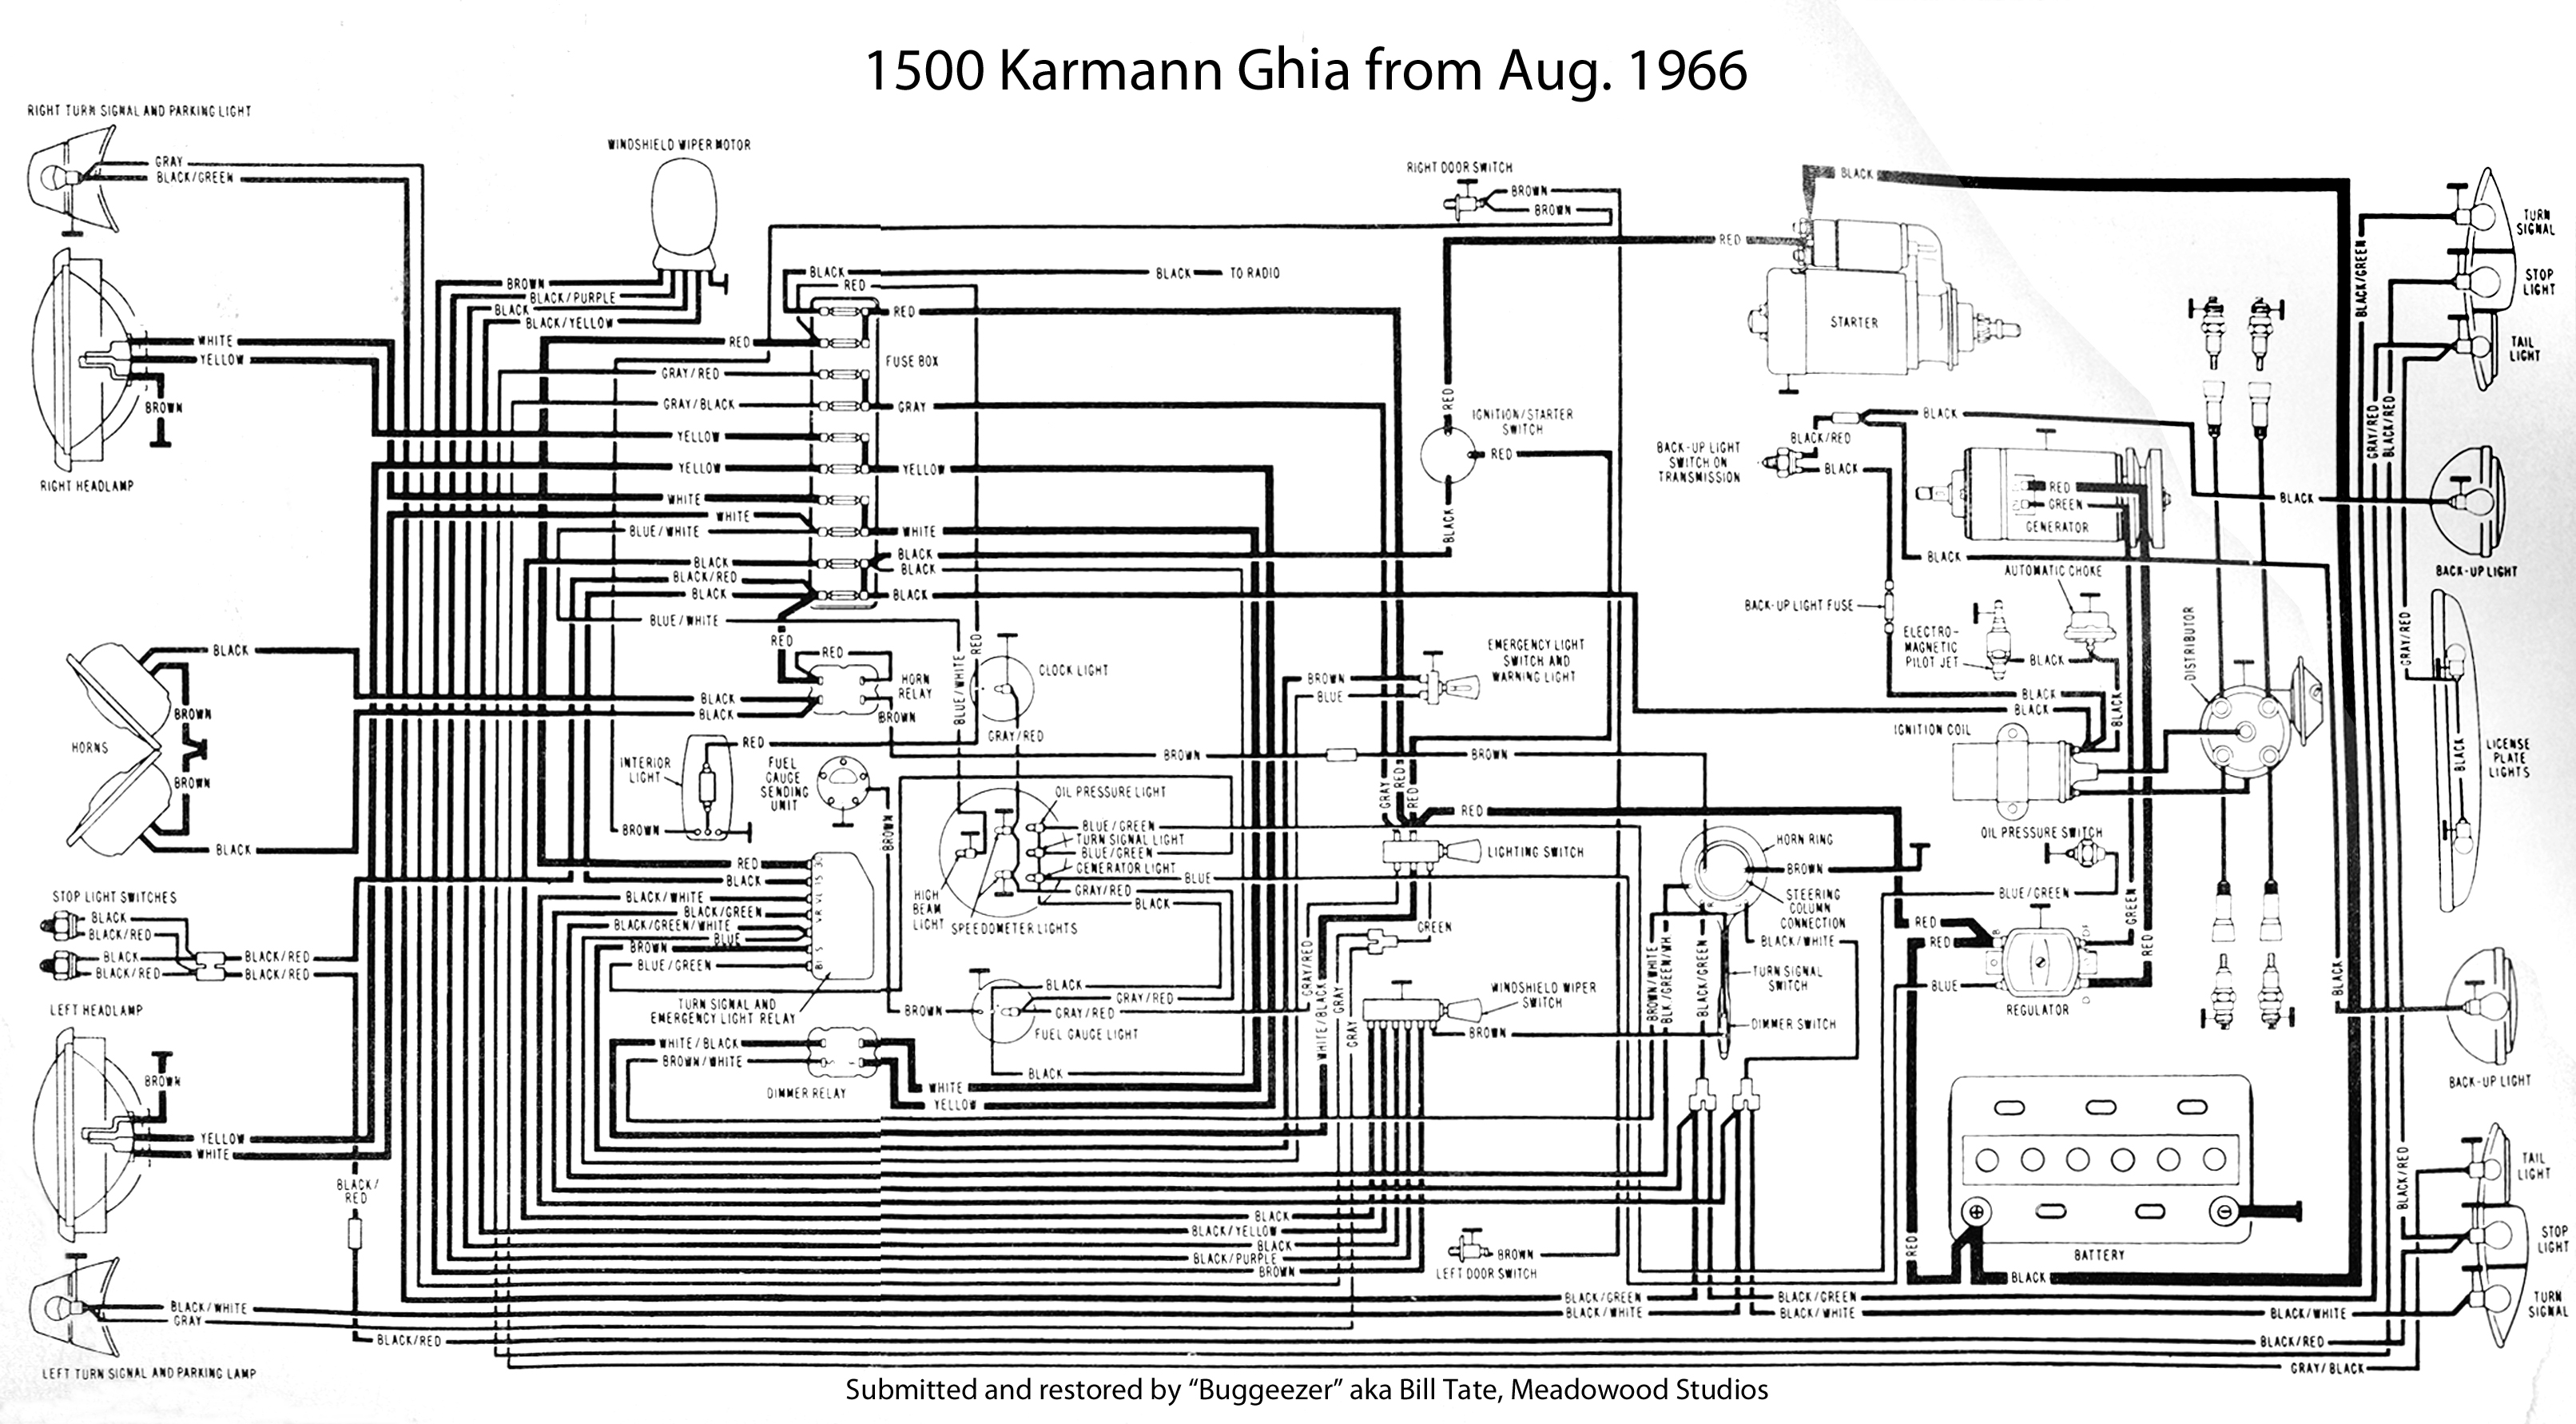 71 karmann ghia wiring diagram thesamba.com :: karmann ghia wiring diagrams #14